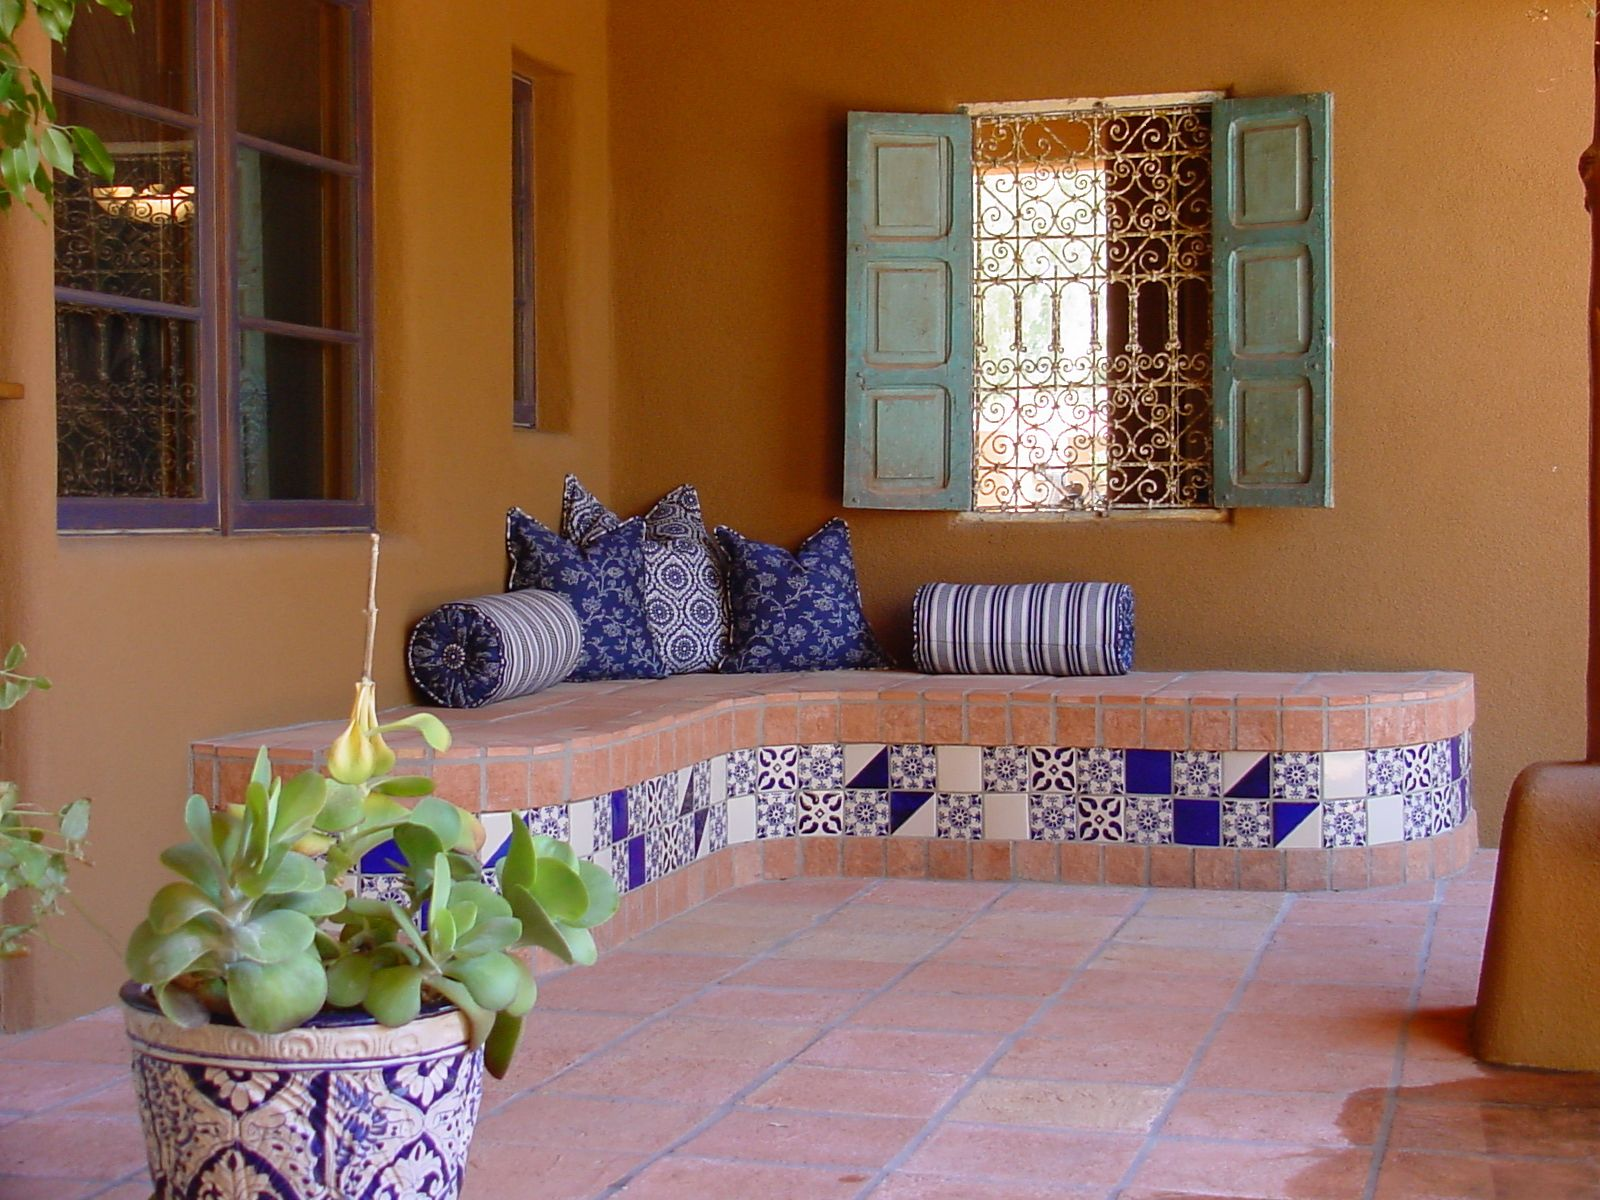 Pin by Gregg Wolff on For the Home | Mexican home decor ... on Mexican Patio Ideas  id=11399